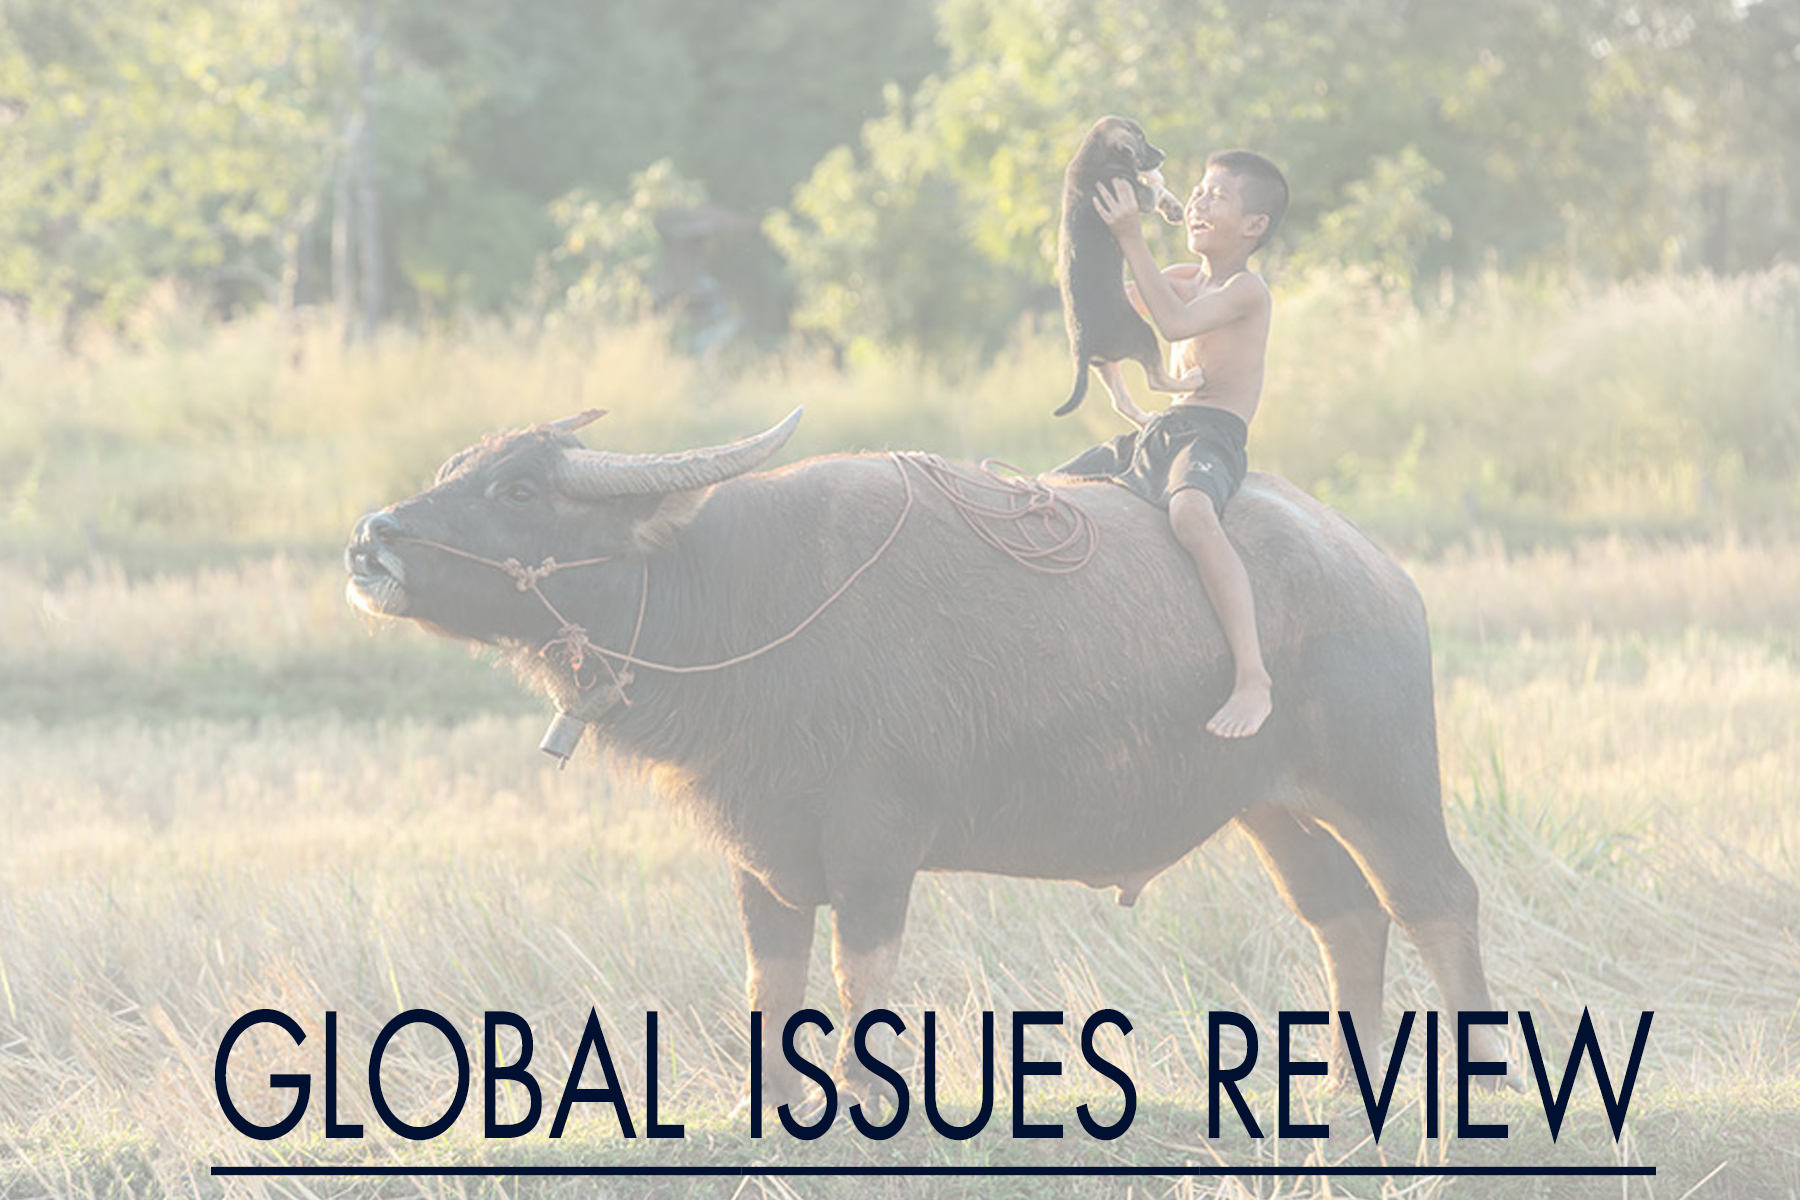 Global Issues Review